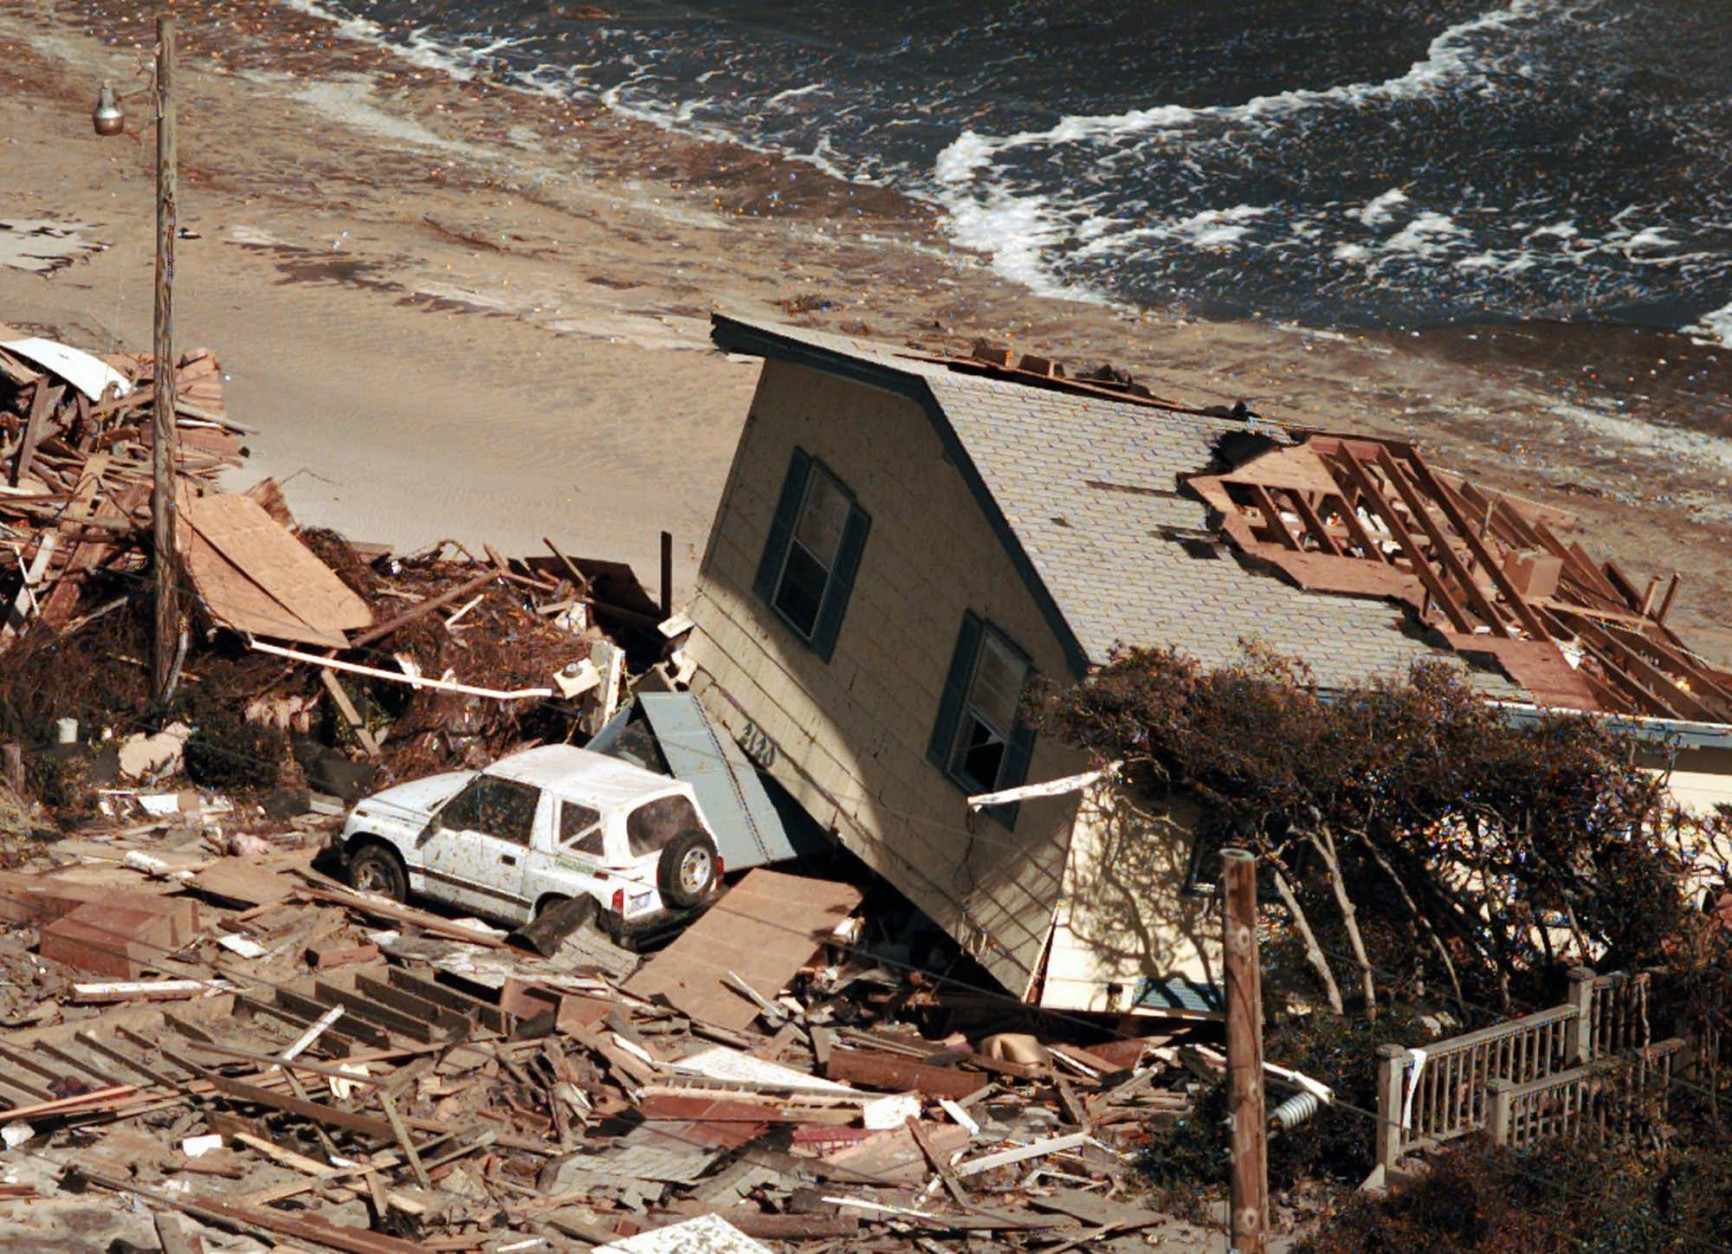 A house destroyed by Hurricane Fran is seen at North Topsail Beach, N.C., Friday, Sept. 6, 1996, after the hurricane hit the North Carolina coast Thursday night. (AP Photo/Rick Bowmer)